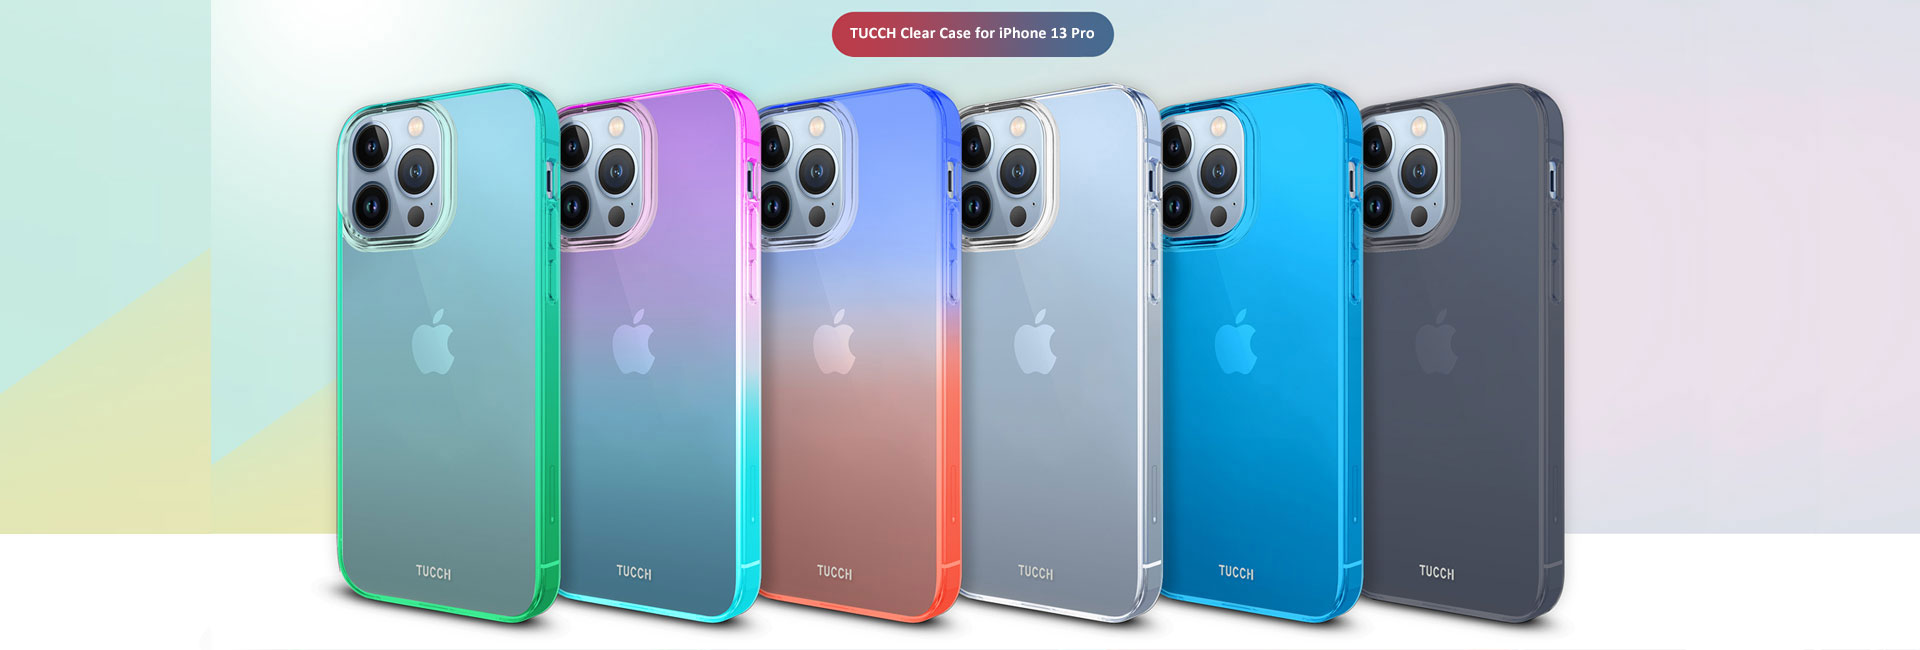 TUCCH iPhone 13 Pro Max Clear TPU Cases Gradient Color